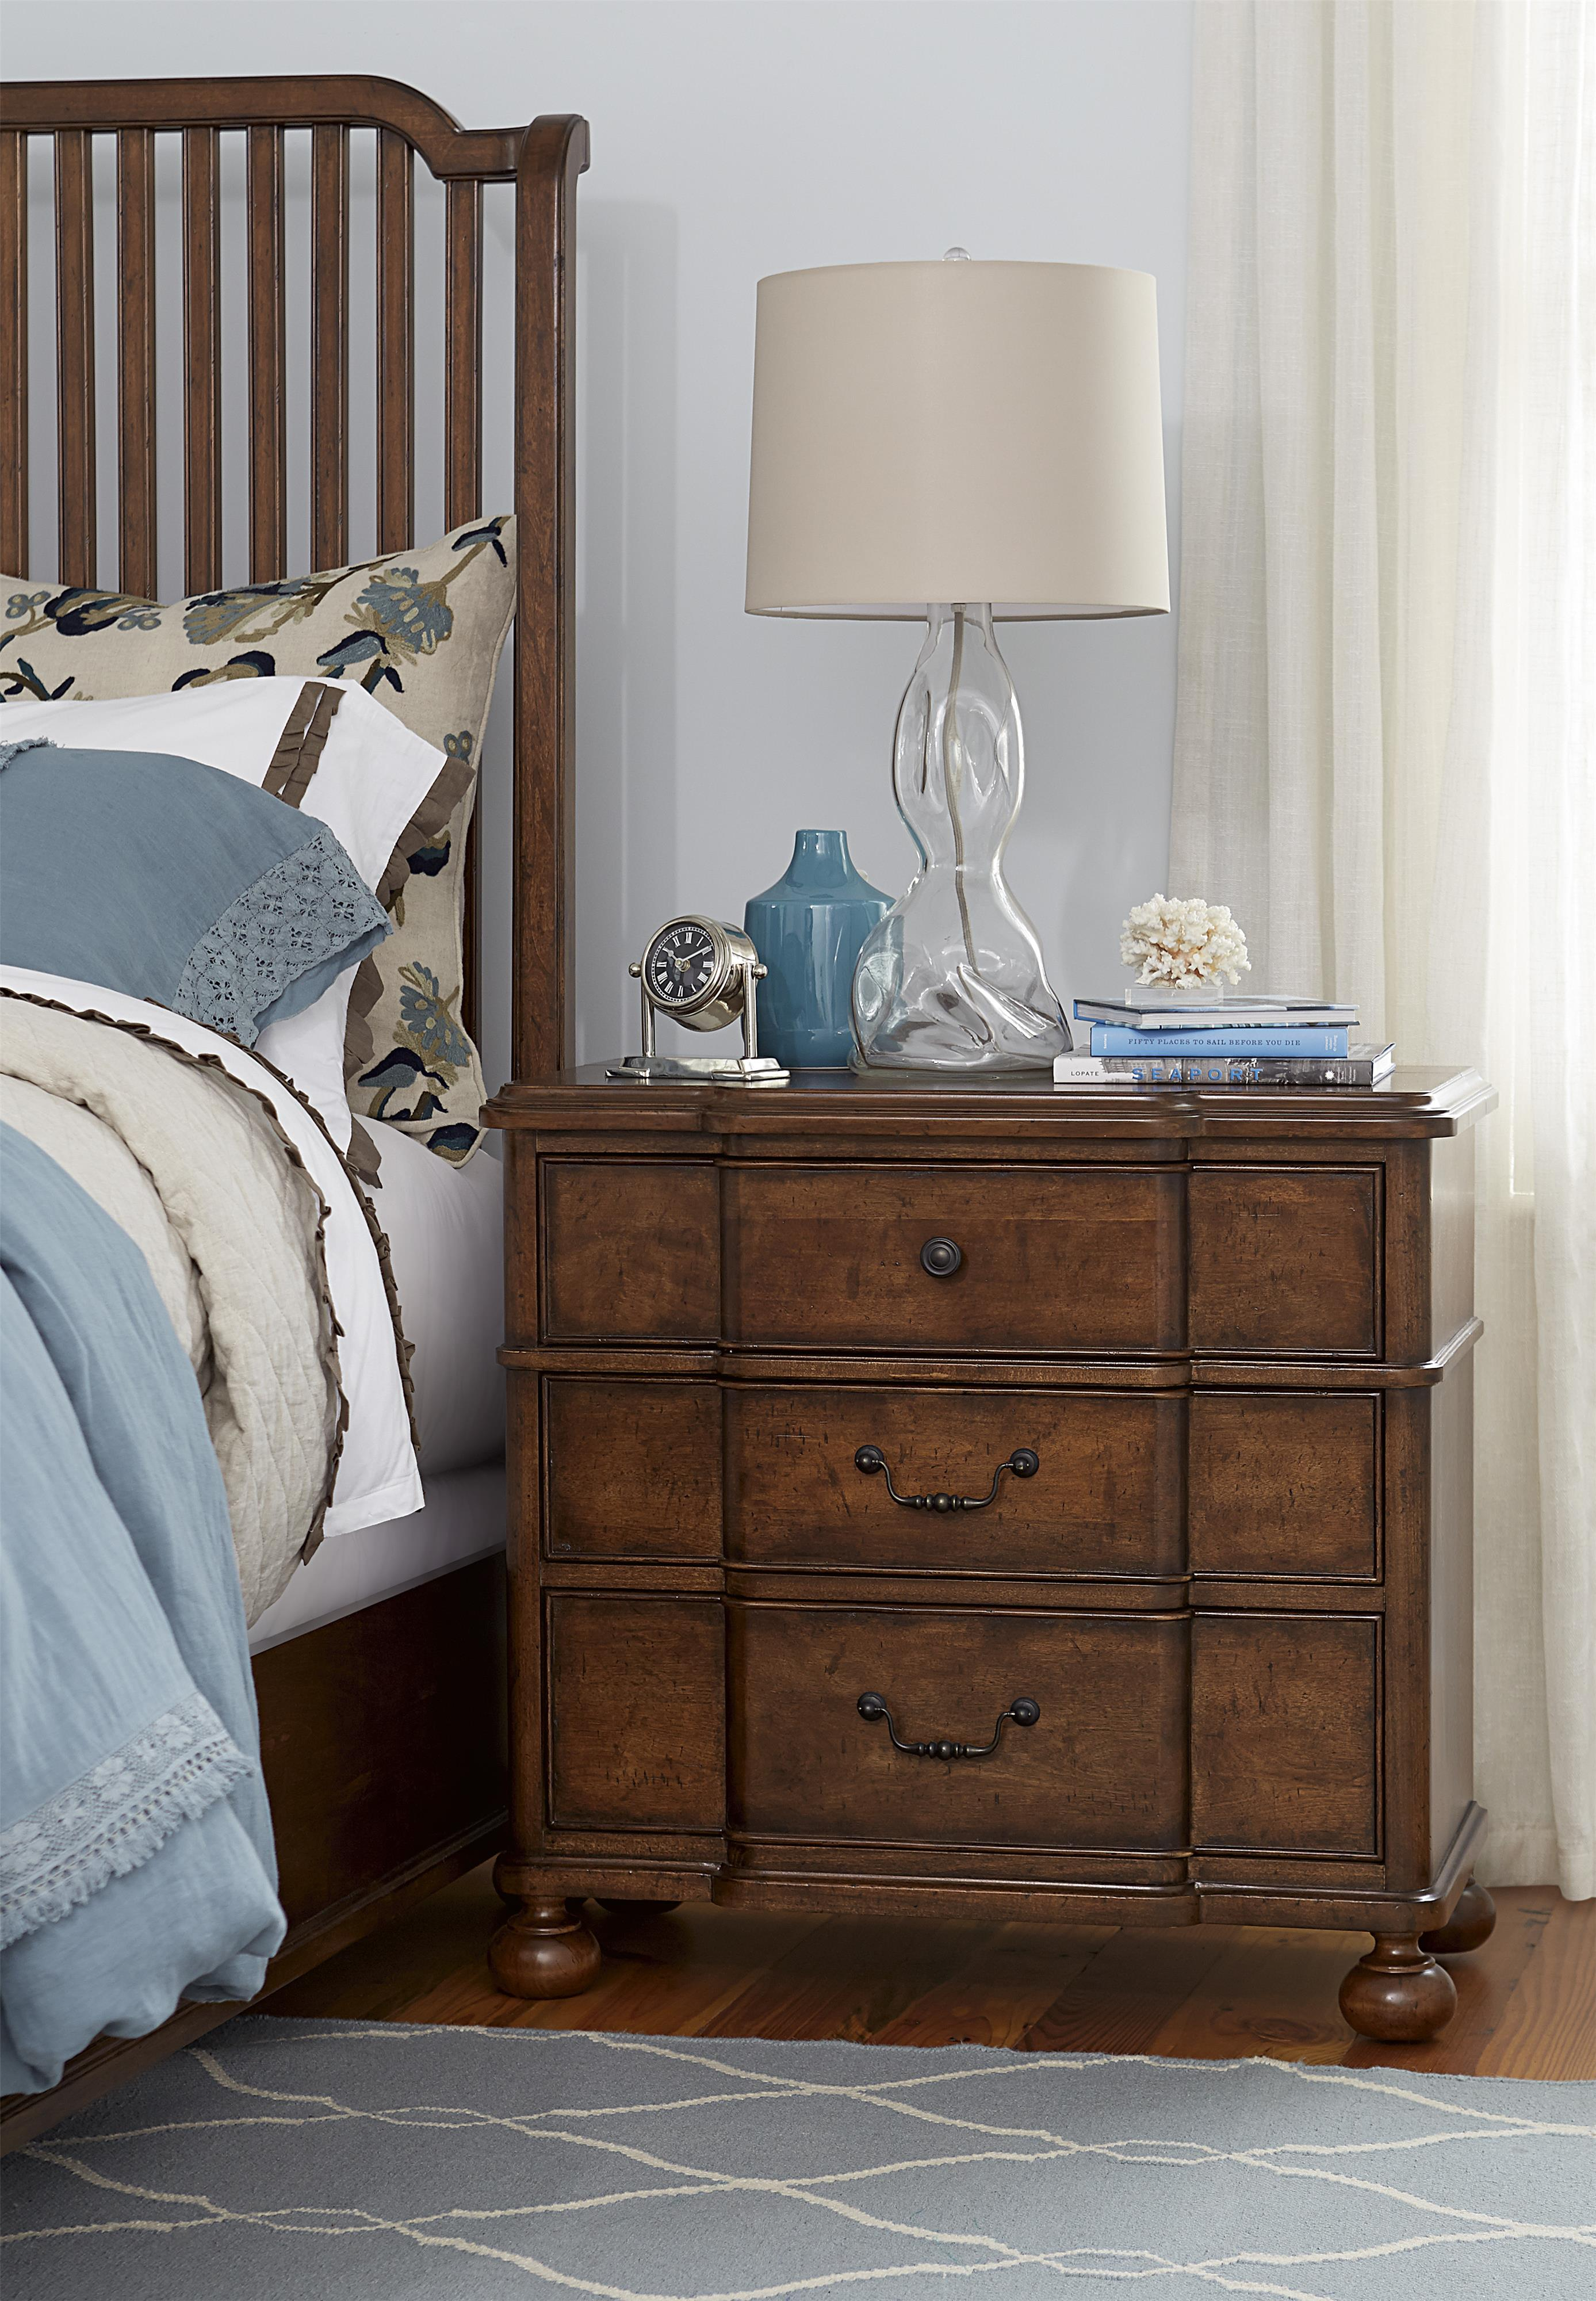 Paula Deen By Universal Dogwood Nightstand With Outlet Fashion Furniture Night Stands